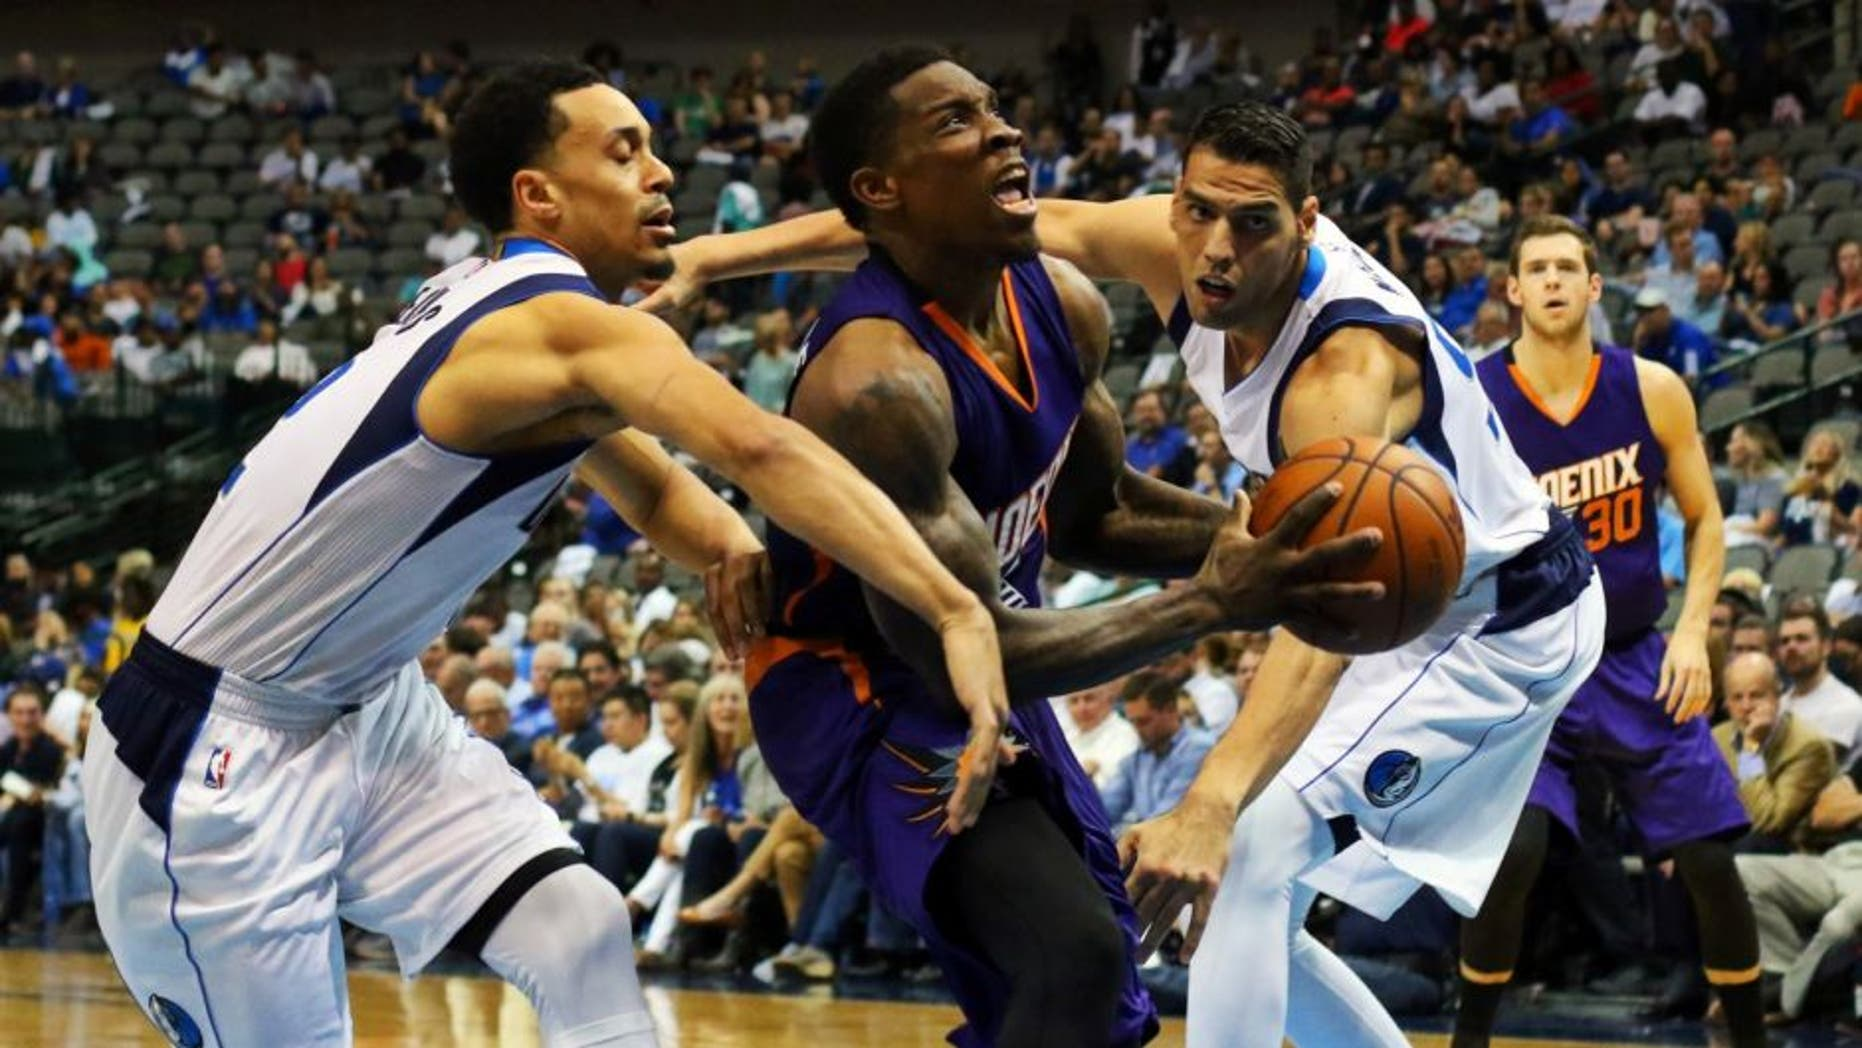 Oct 21, 2015; Dallas, TX, USA; Phoenix Suns guard Eric Bledsoe (2) splits defenders Dallas Mavericks guard John Jenkins (12) and center Salah Mejri (50) during the second half at American Airlines Center. Phoenix won 99-87. Mandatory Credit: Ray Carlin-USA TODAY Sports